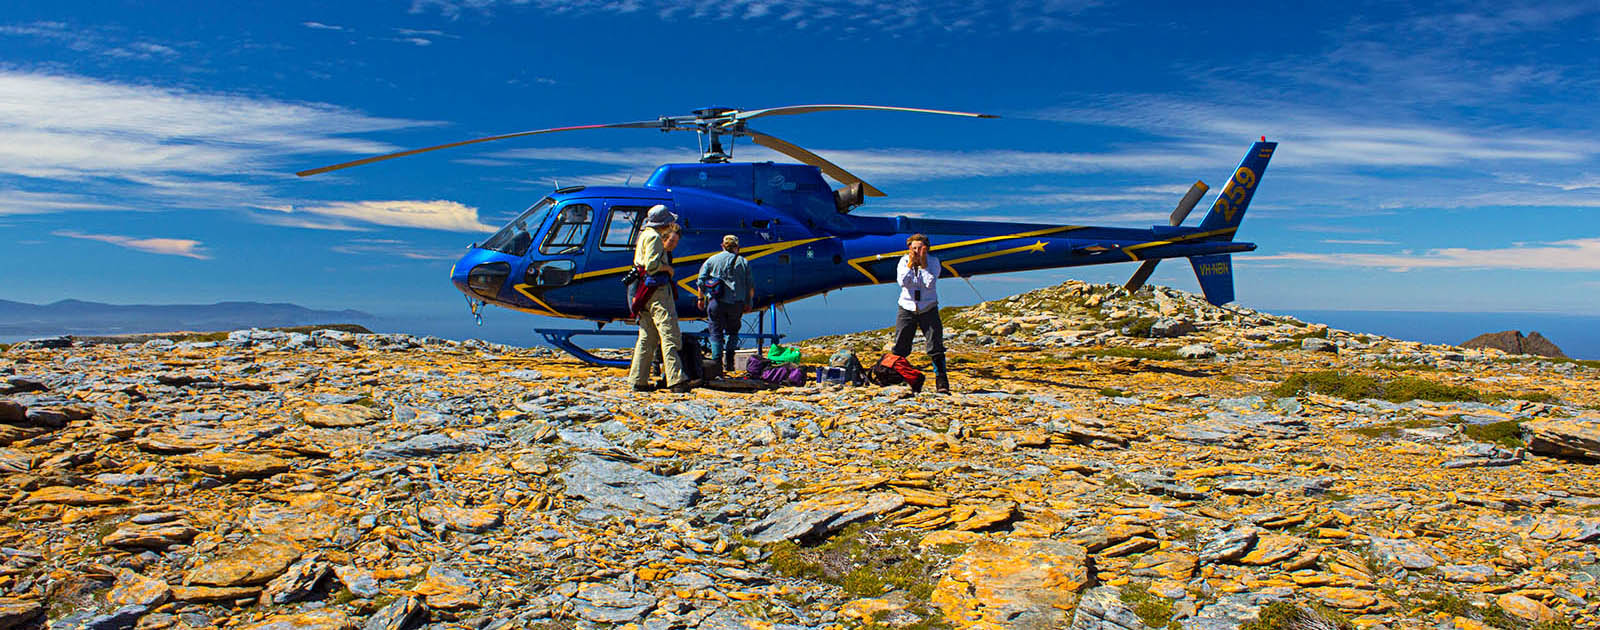 helicopter drop off seed collection field trip central Tasmanian wilderness